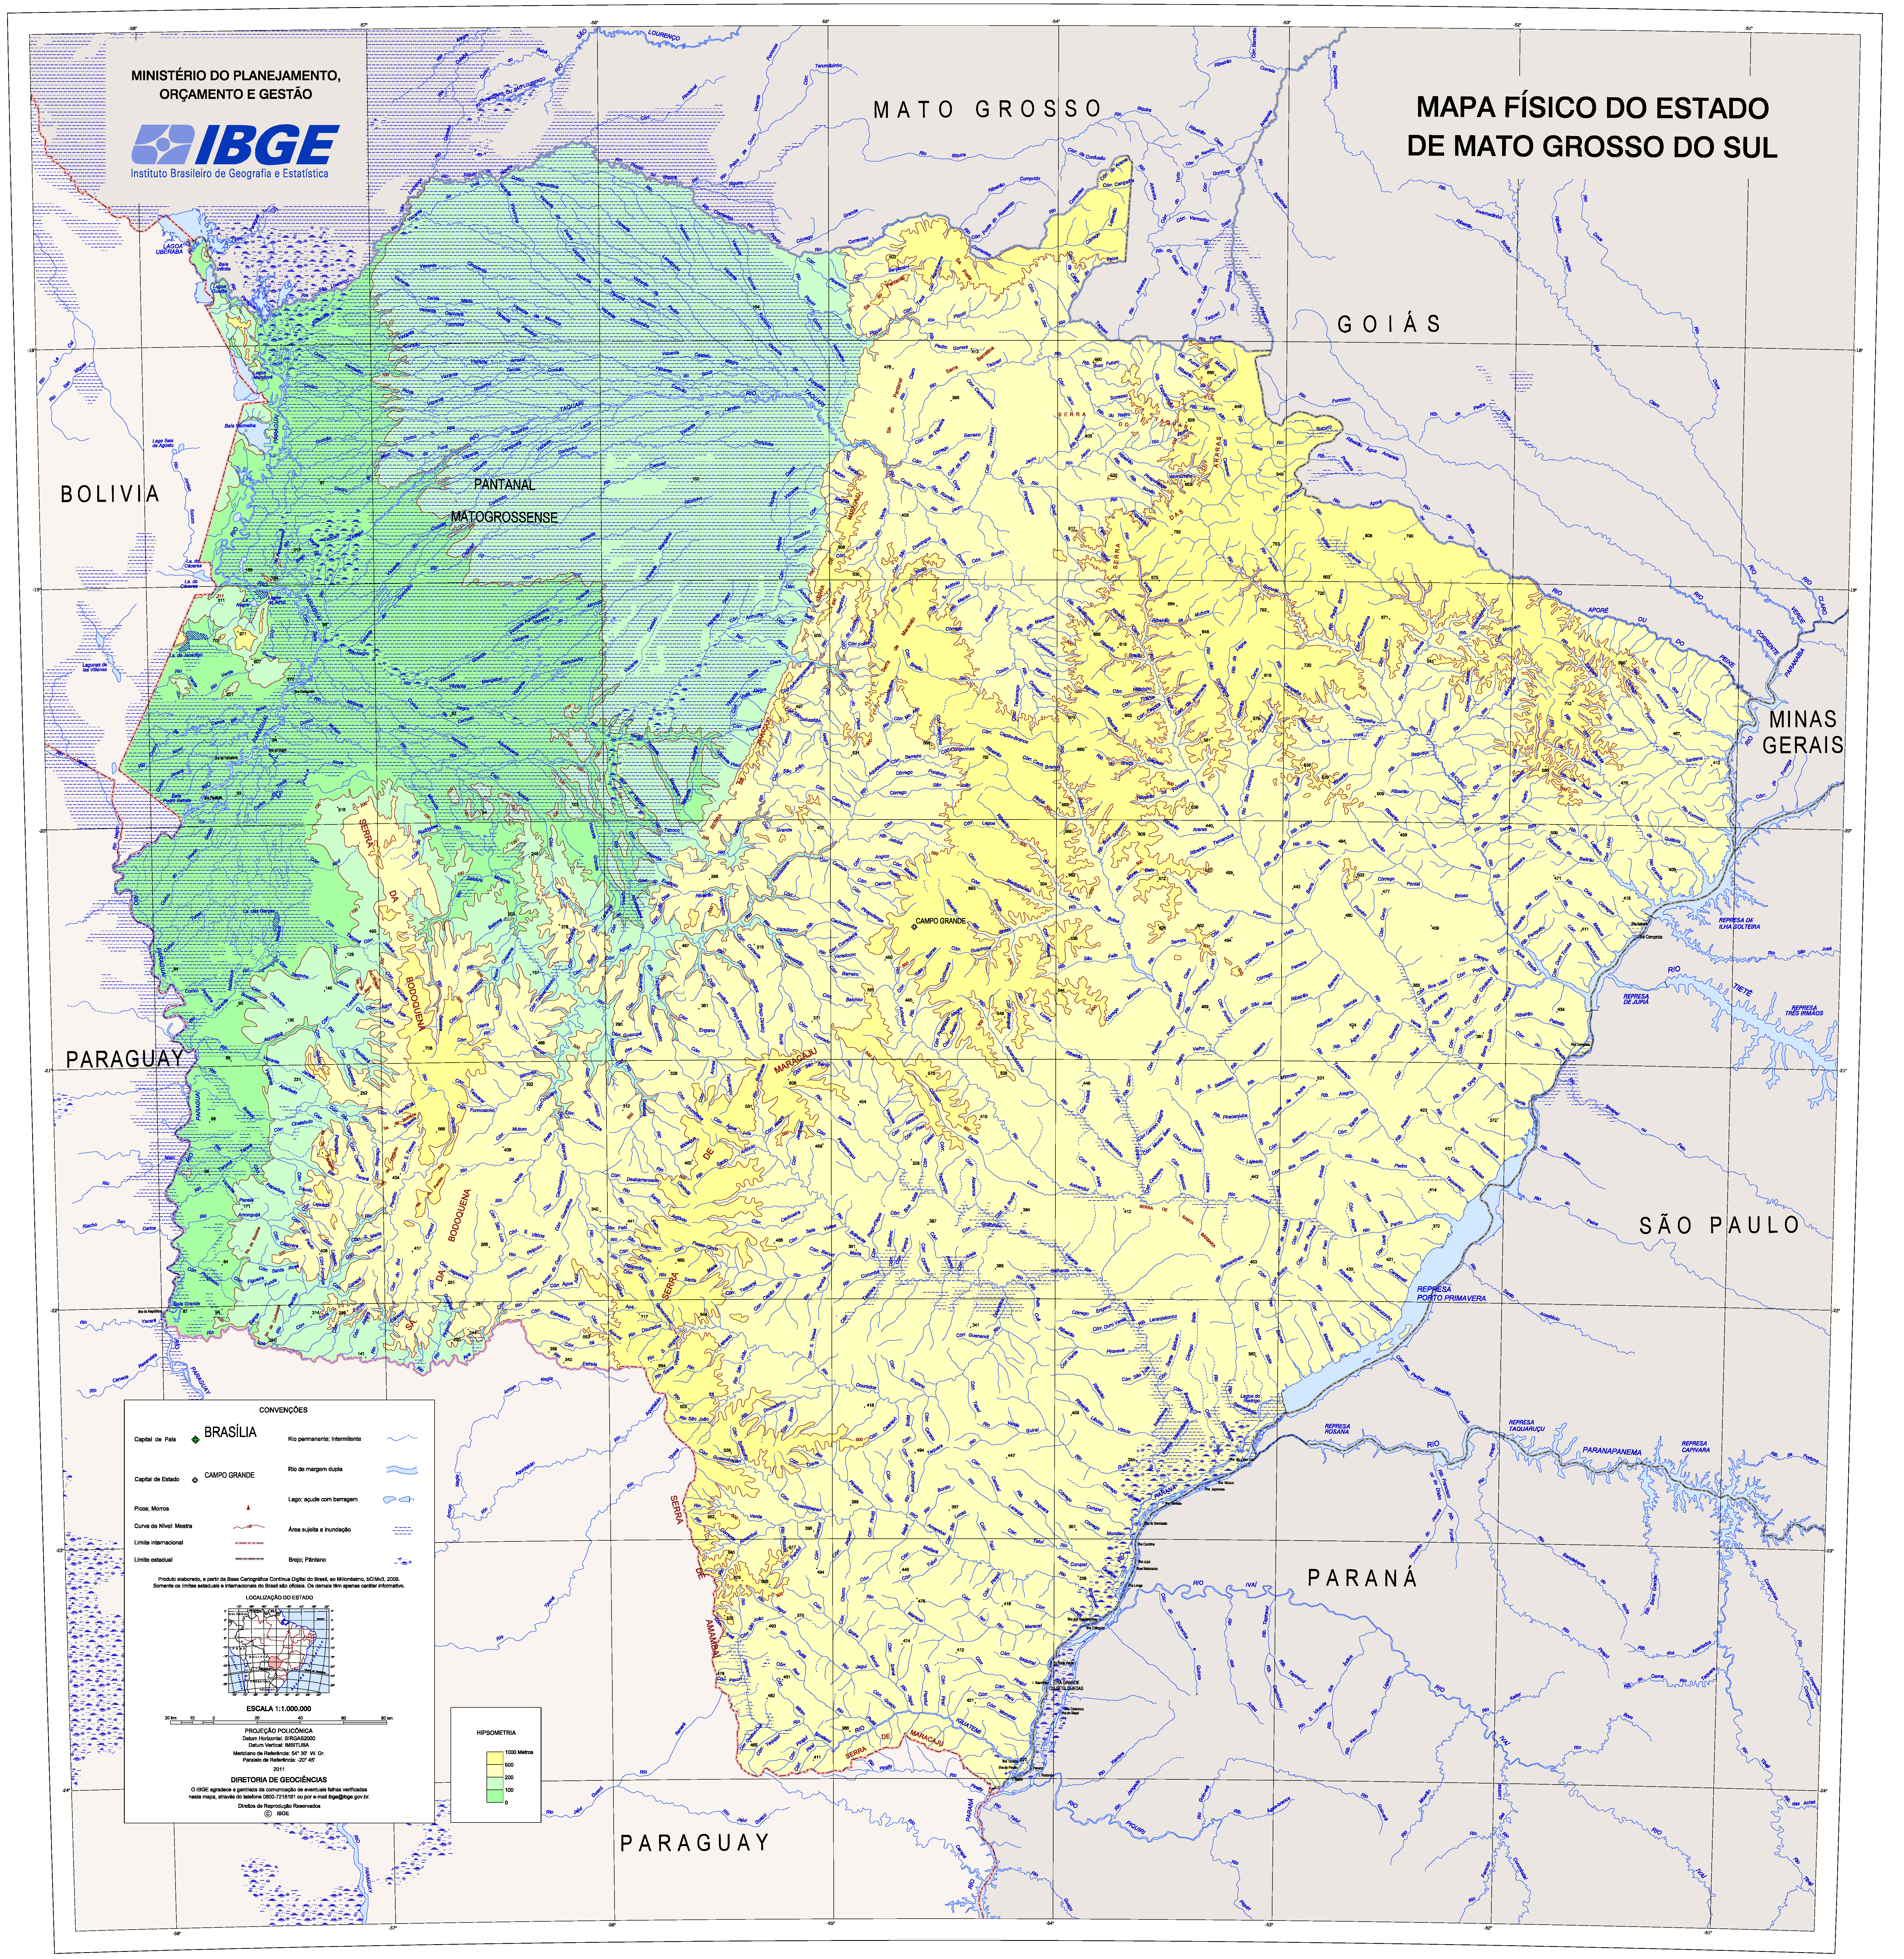 Capa da Mapa Físico do Estado de Mato Grosso do Sul